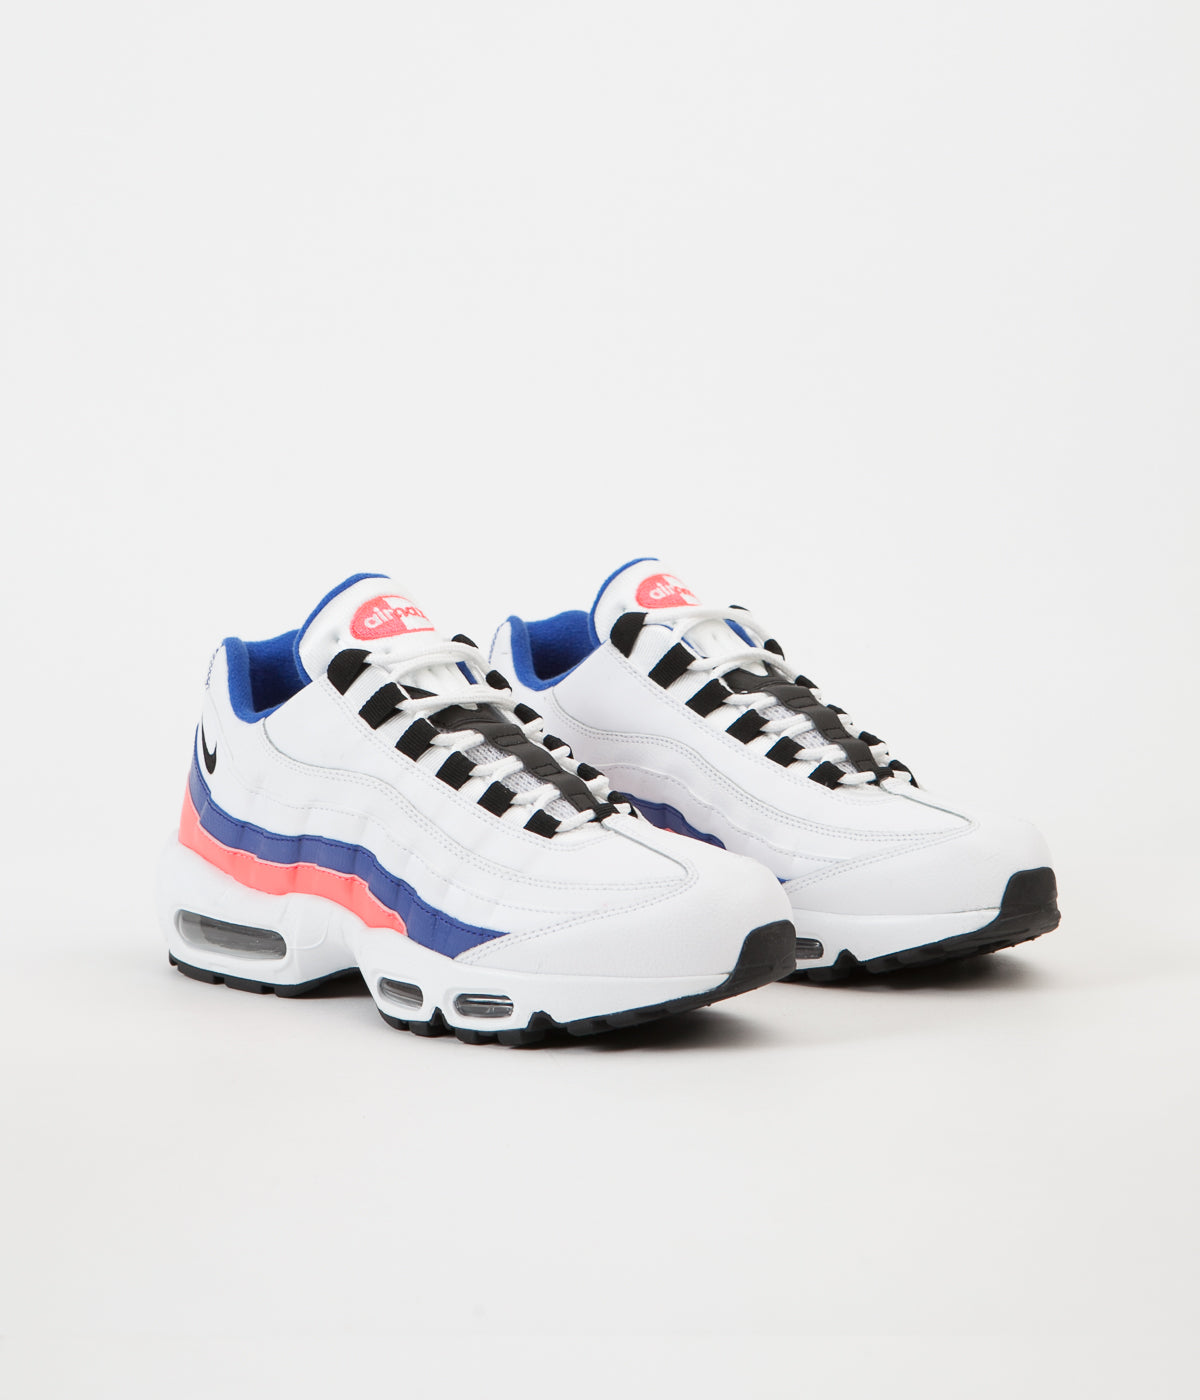 official photos f2322 9146c ... Nike Air Max 95 Essential Shoes - White / Black - Solar Red -  Ultramarine ...